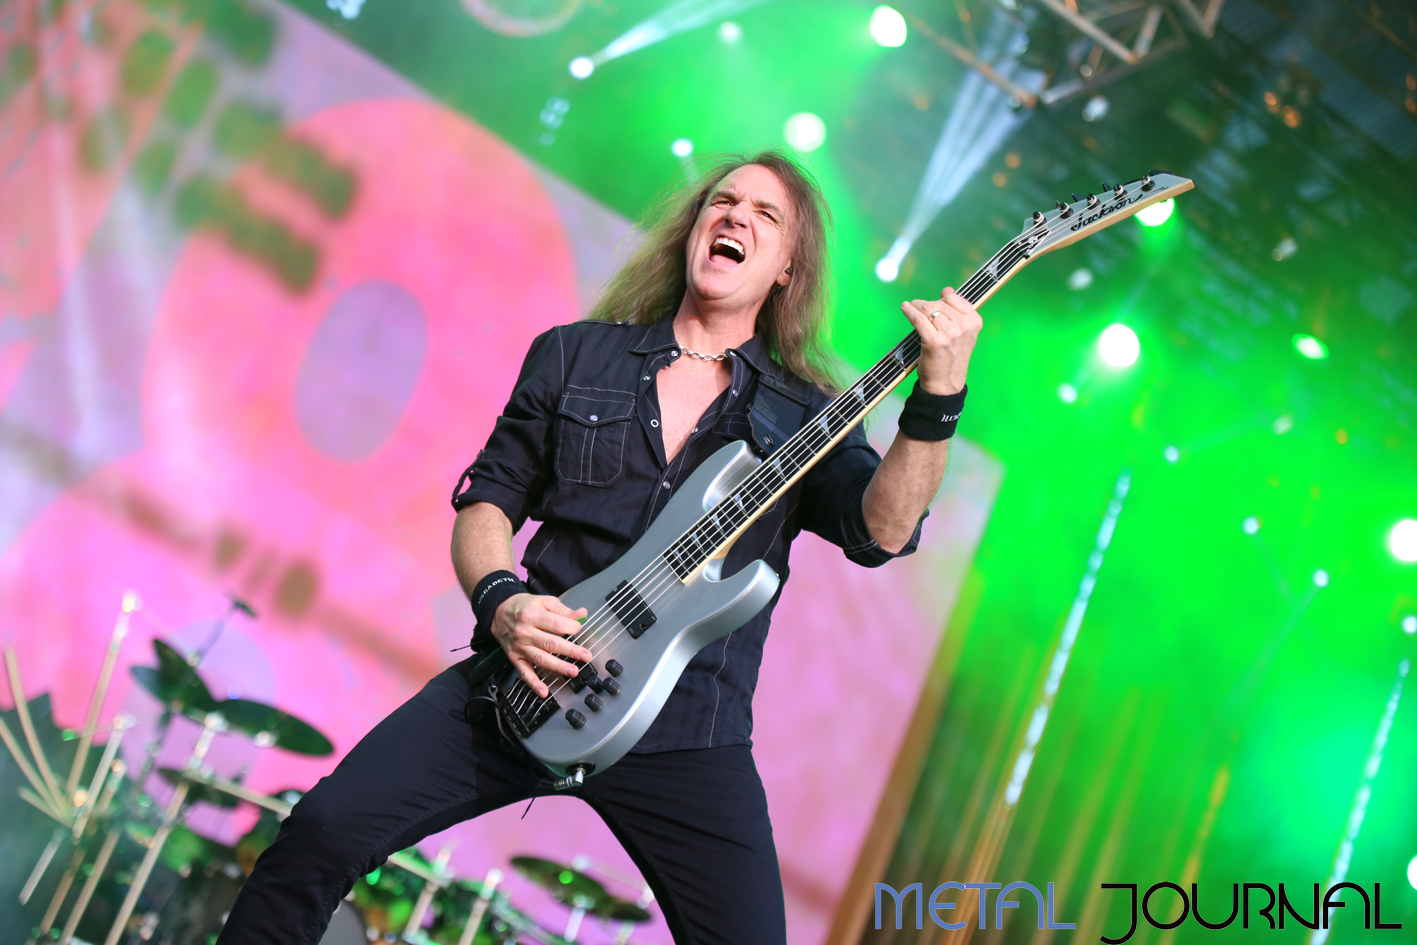 megadeth rock fest 18 - metal journal pic 3